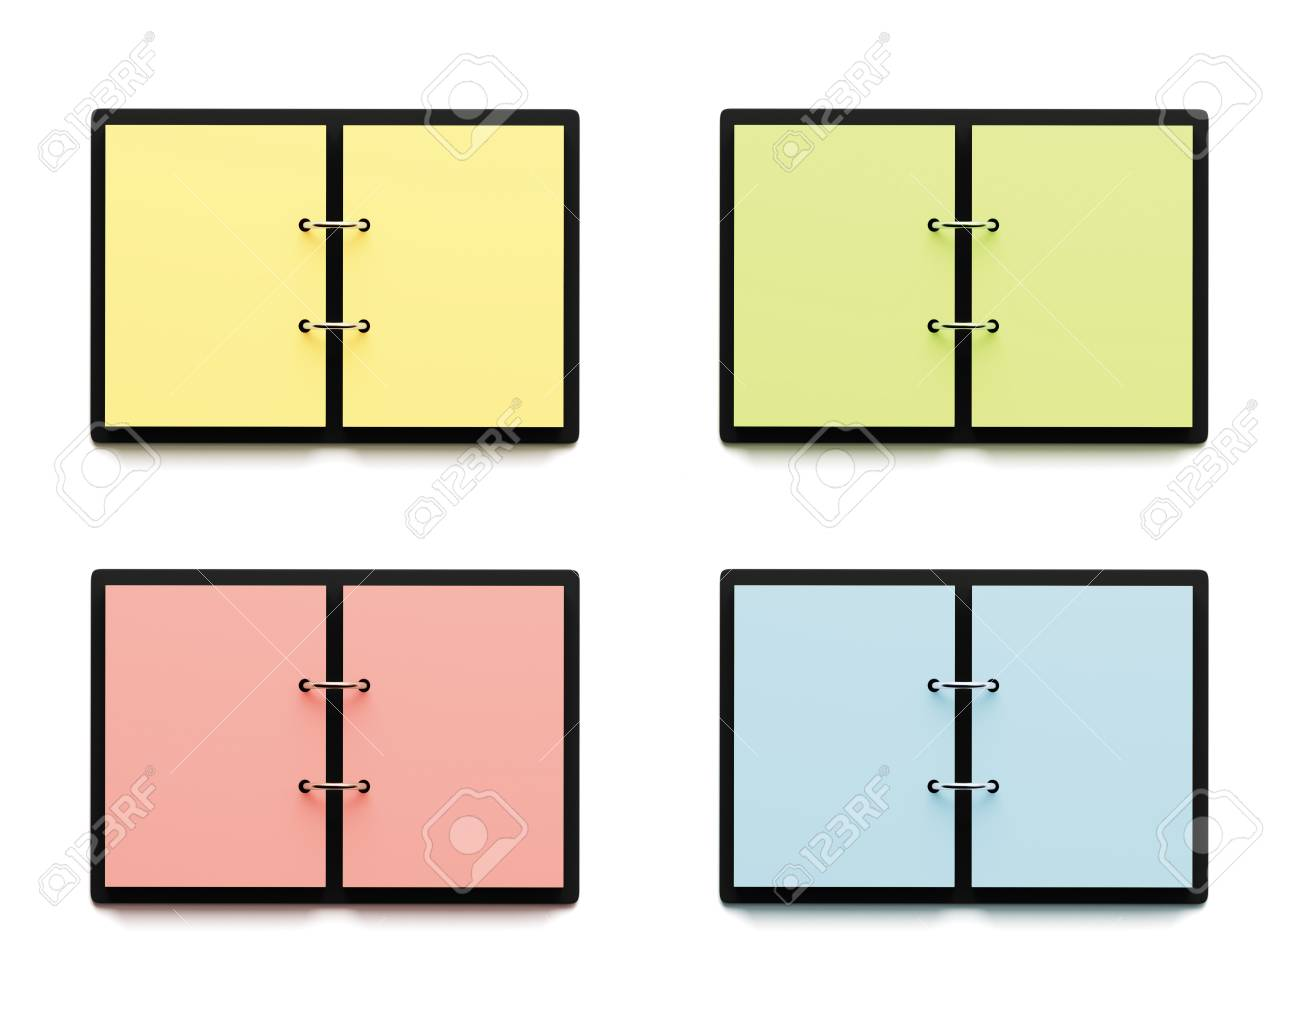 Agenda With Colorful Pages Isolated On White Background Stock Photo